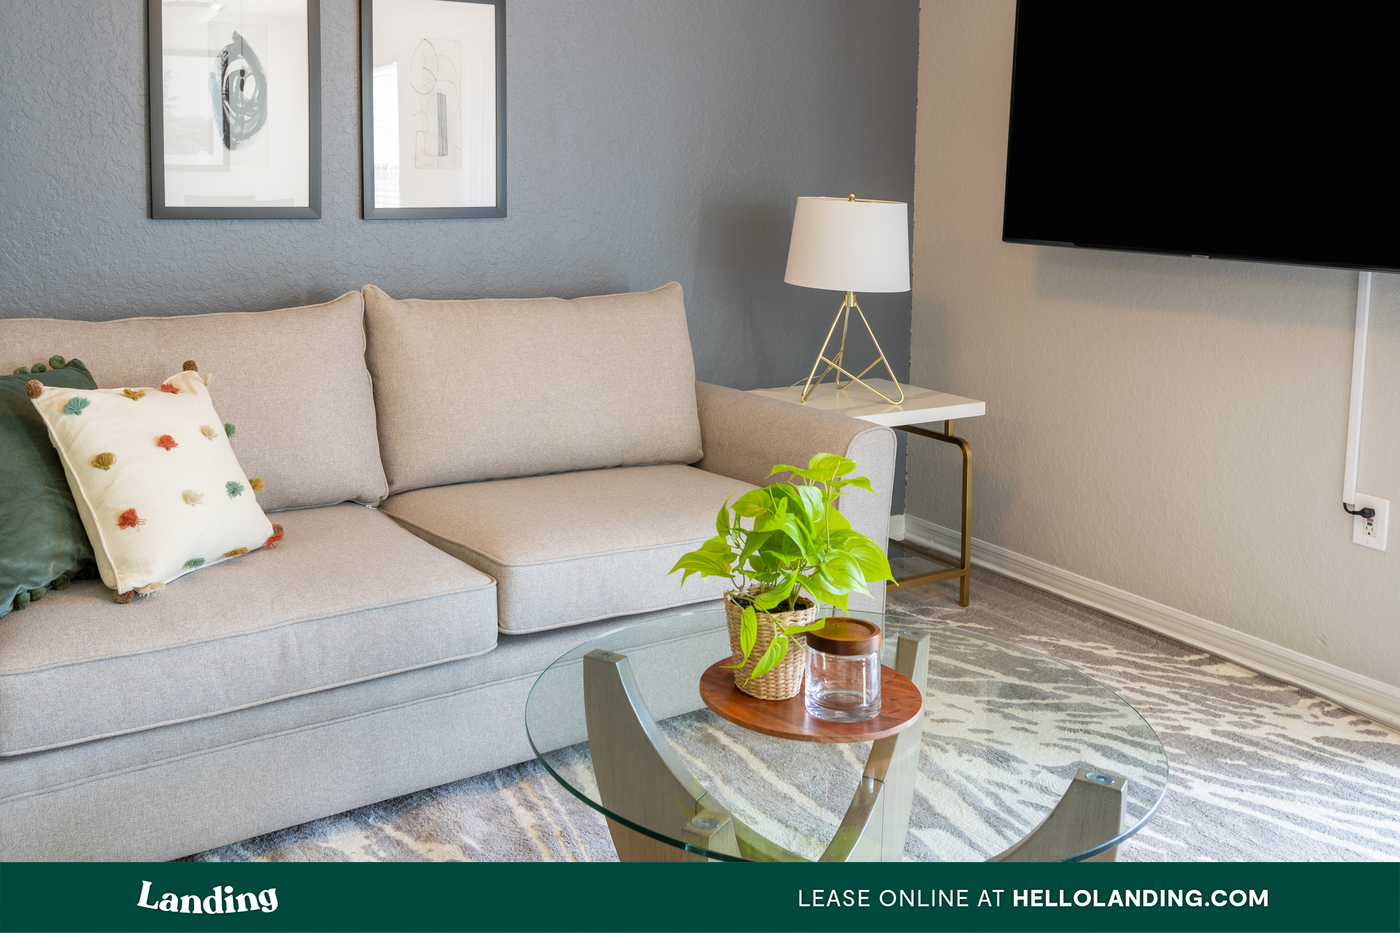 Landing Furnished Apartment The Avenue for rent